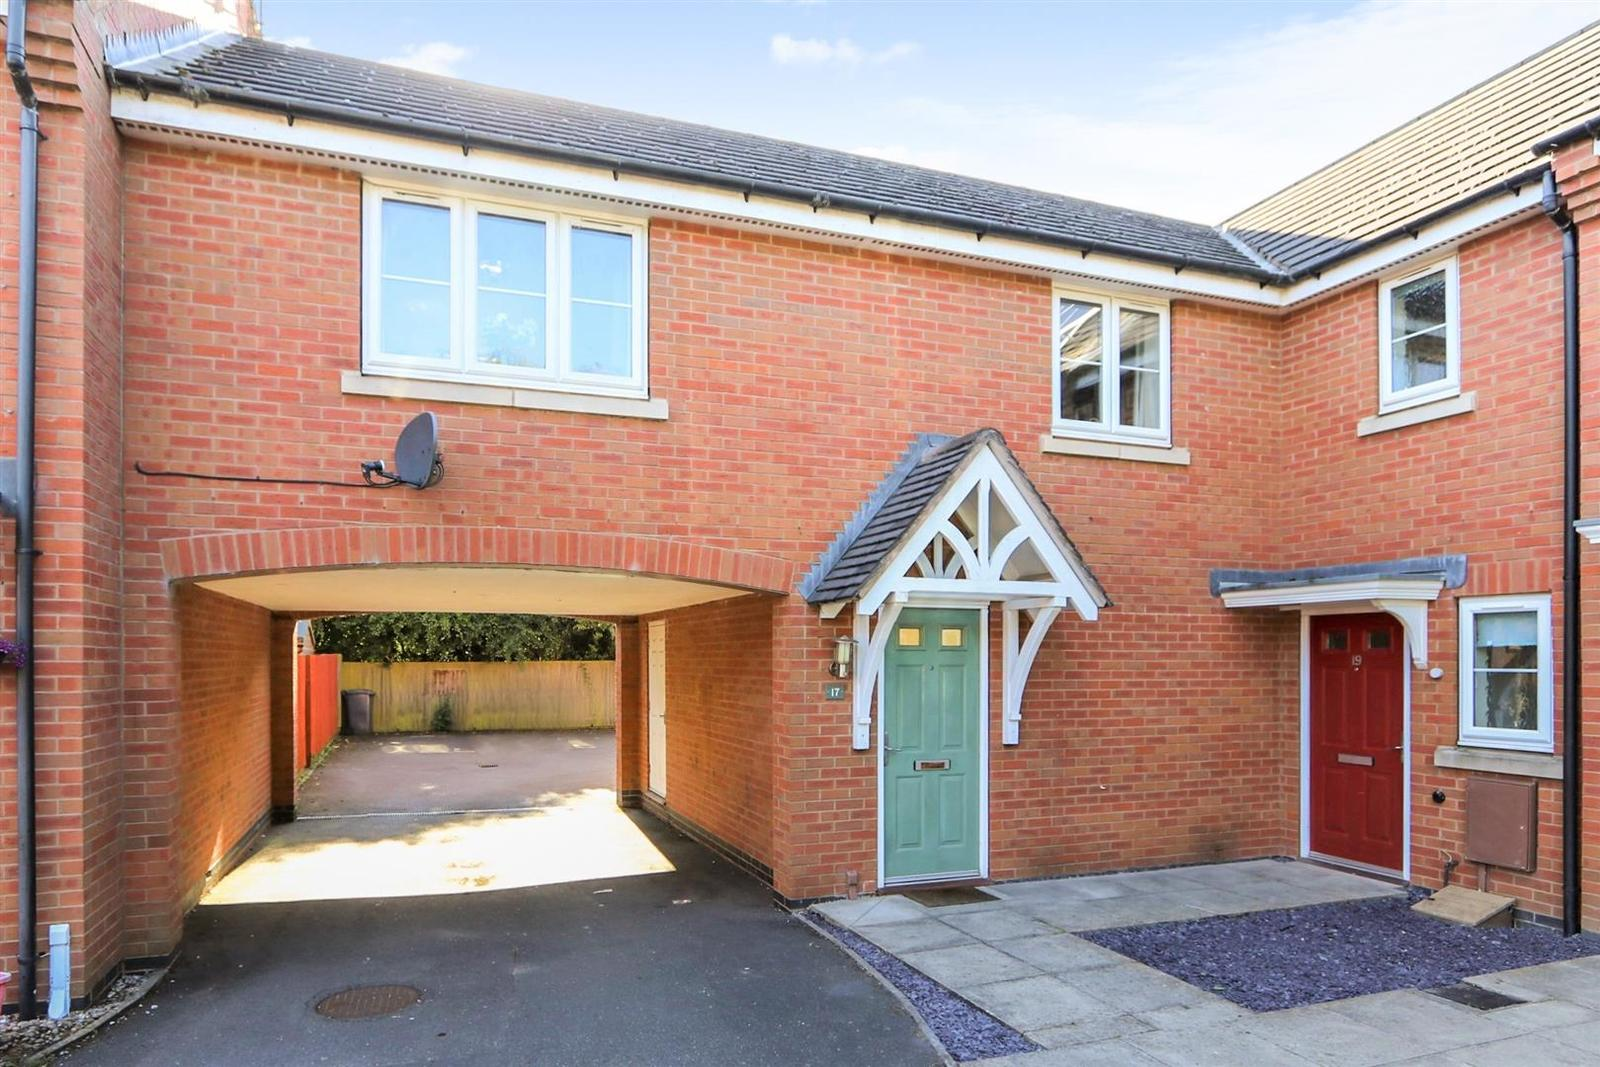 1 Bedroom Terraced House for sale in Edgehill Way, Ashby-De-La-Zouch, LE65...